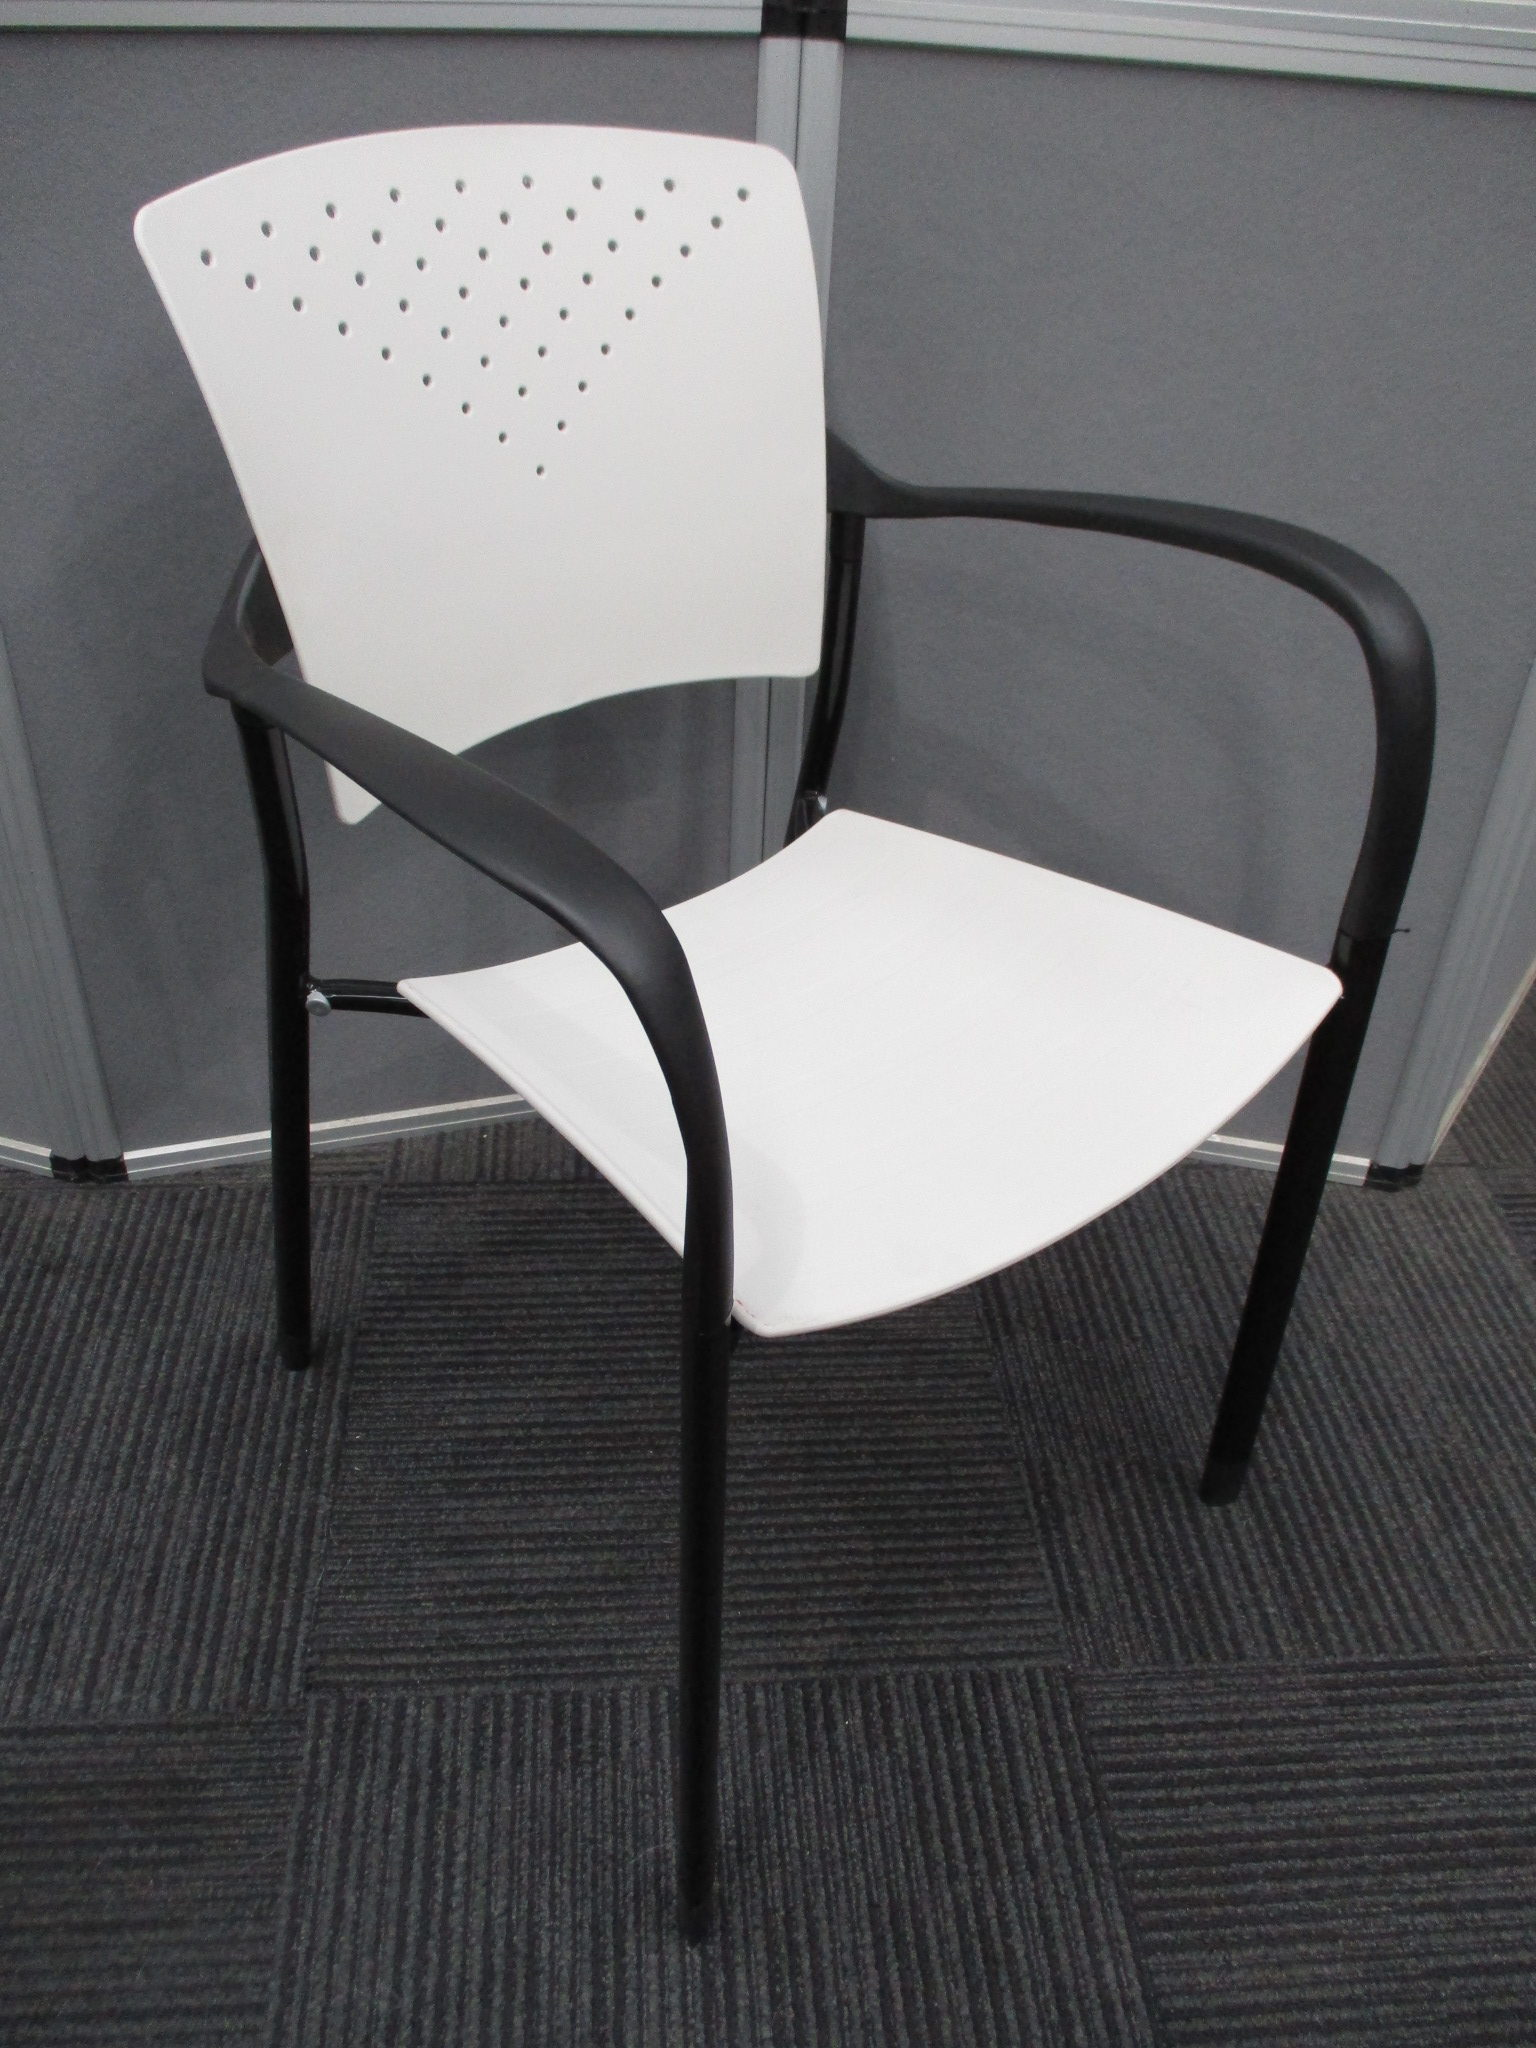 New White and Black Sienna Stacking Chairs $69